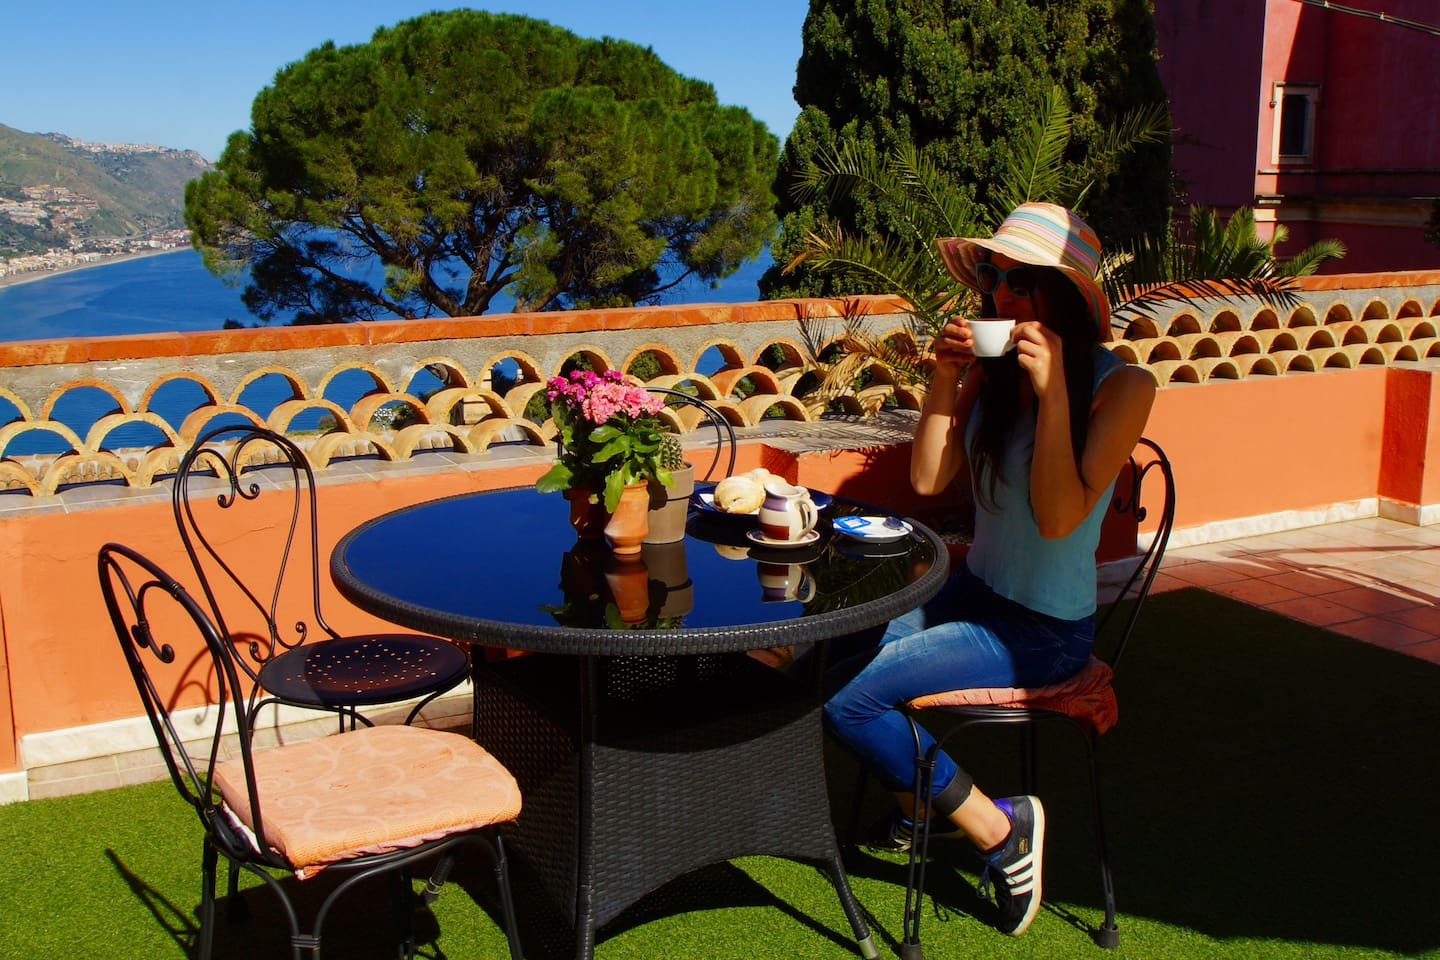 enjoy a cappuccino on terrace with amazing view and at the same time being in the center of Taormina